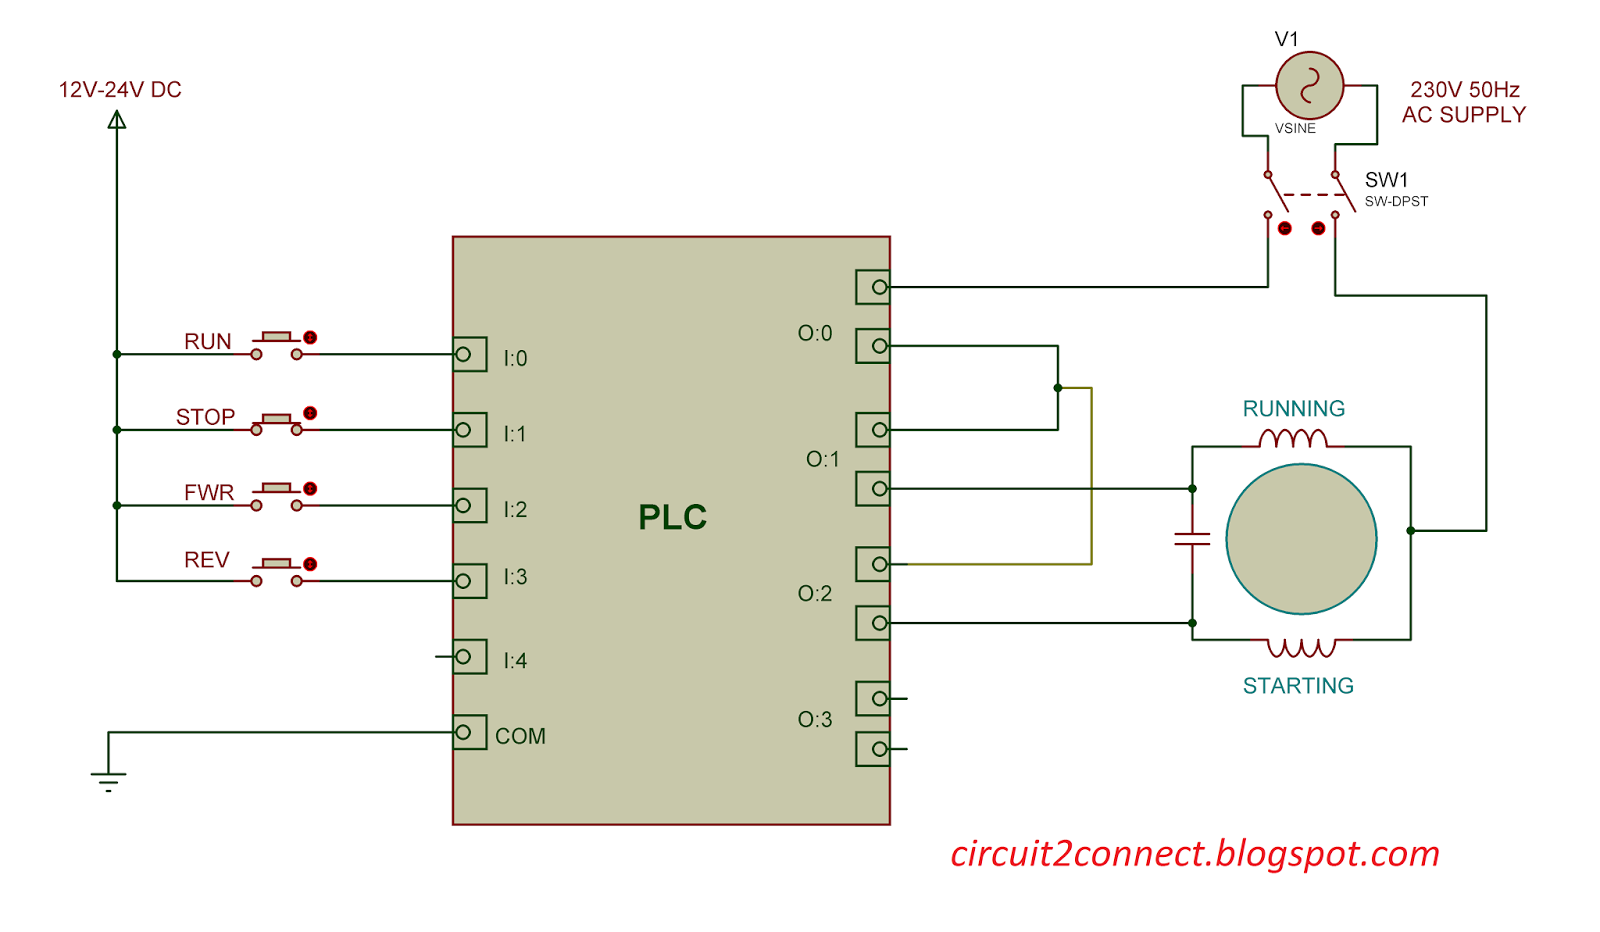 Single Phase Induction Motor Direction Control Using PLC